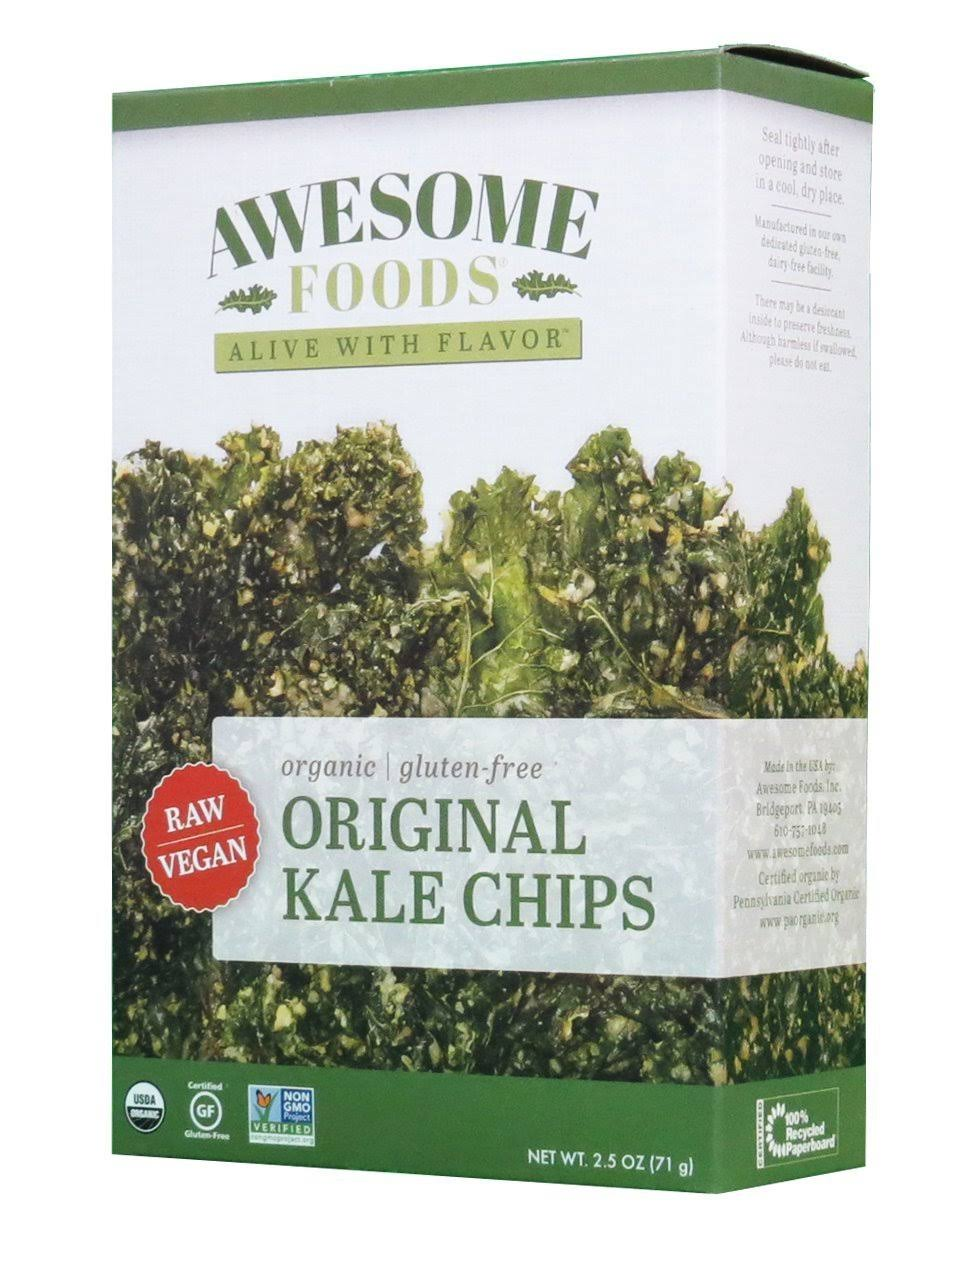 Awesome Foods Organic Gluten-Free Kale Chips - Original